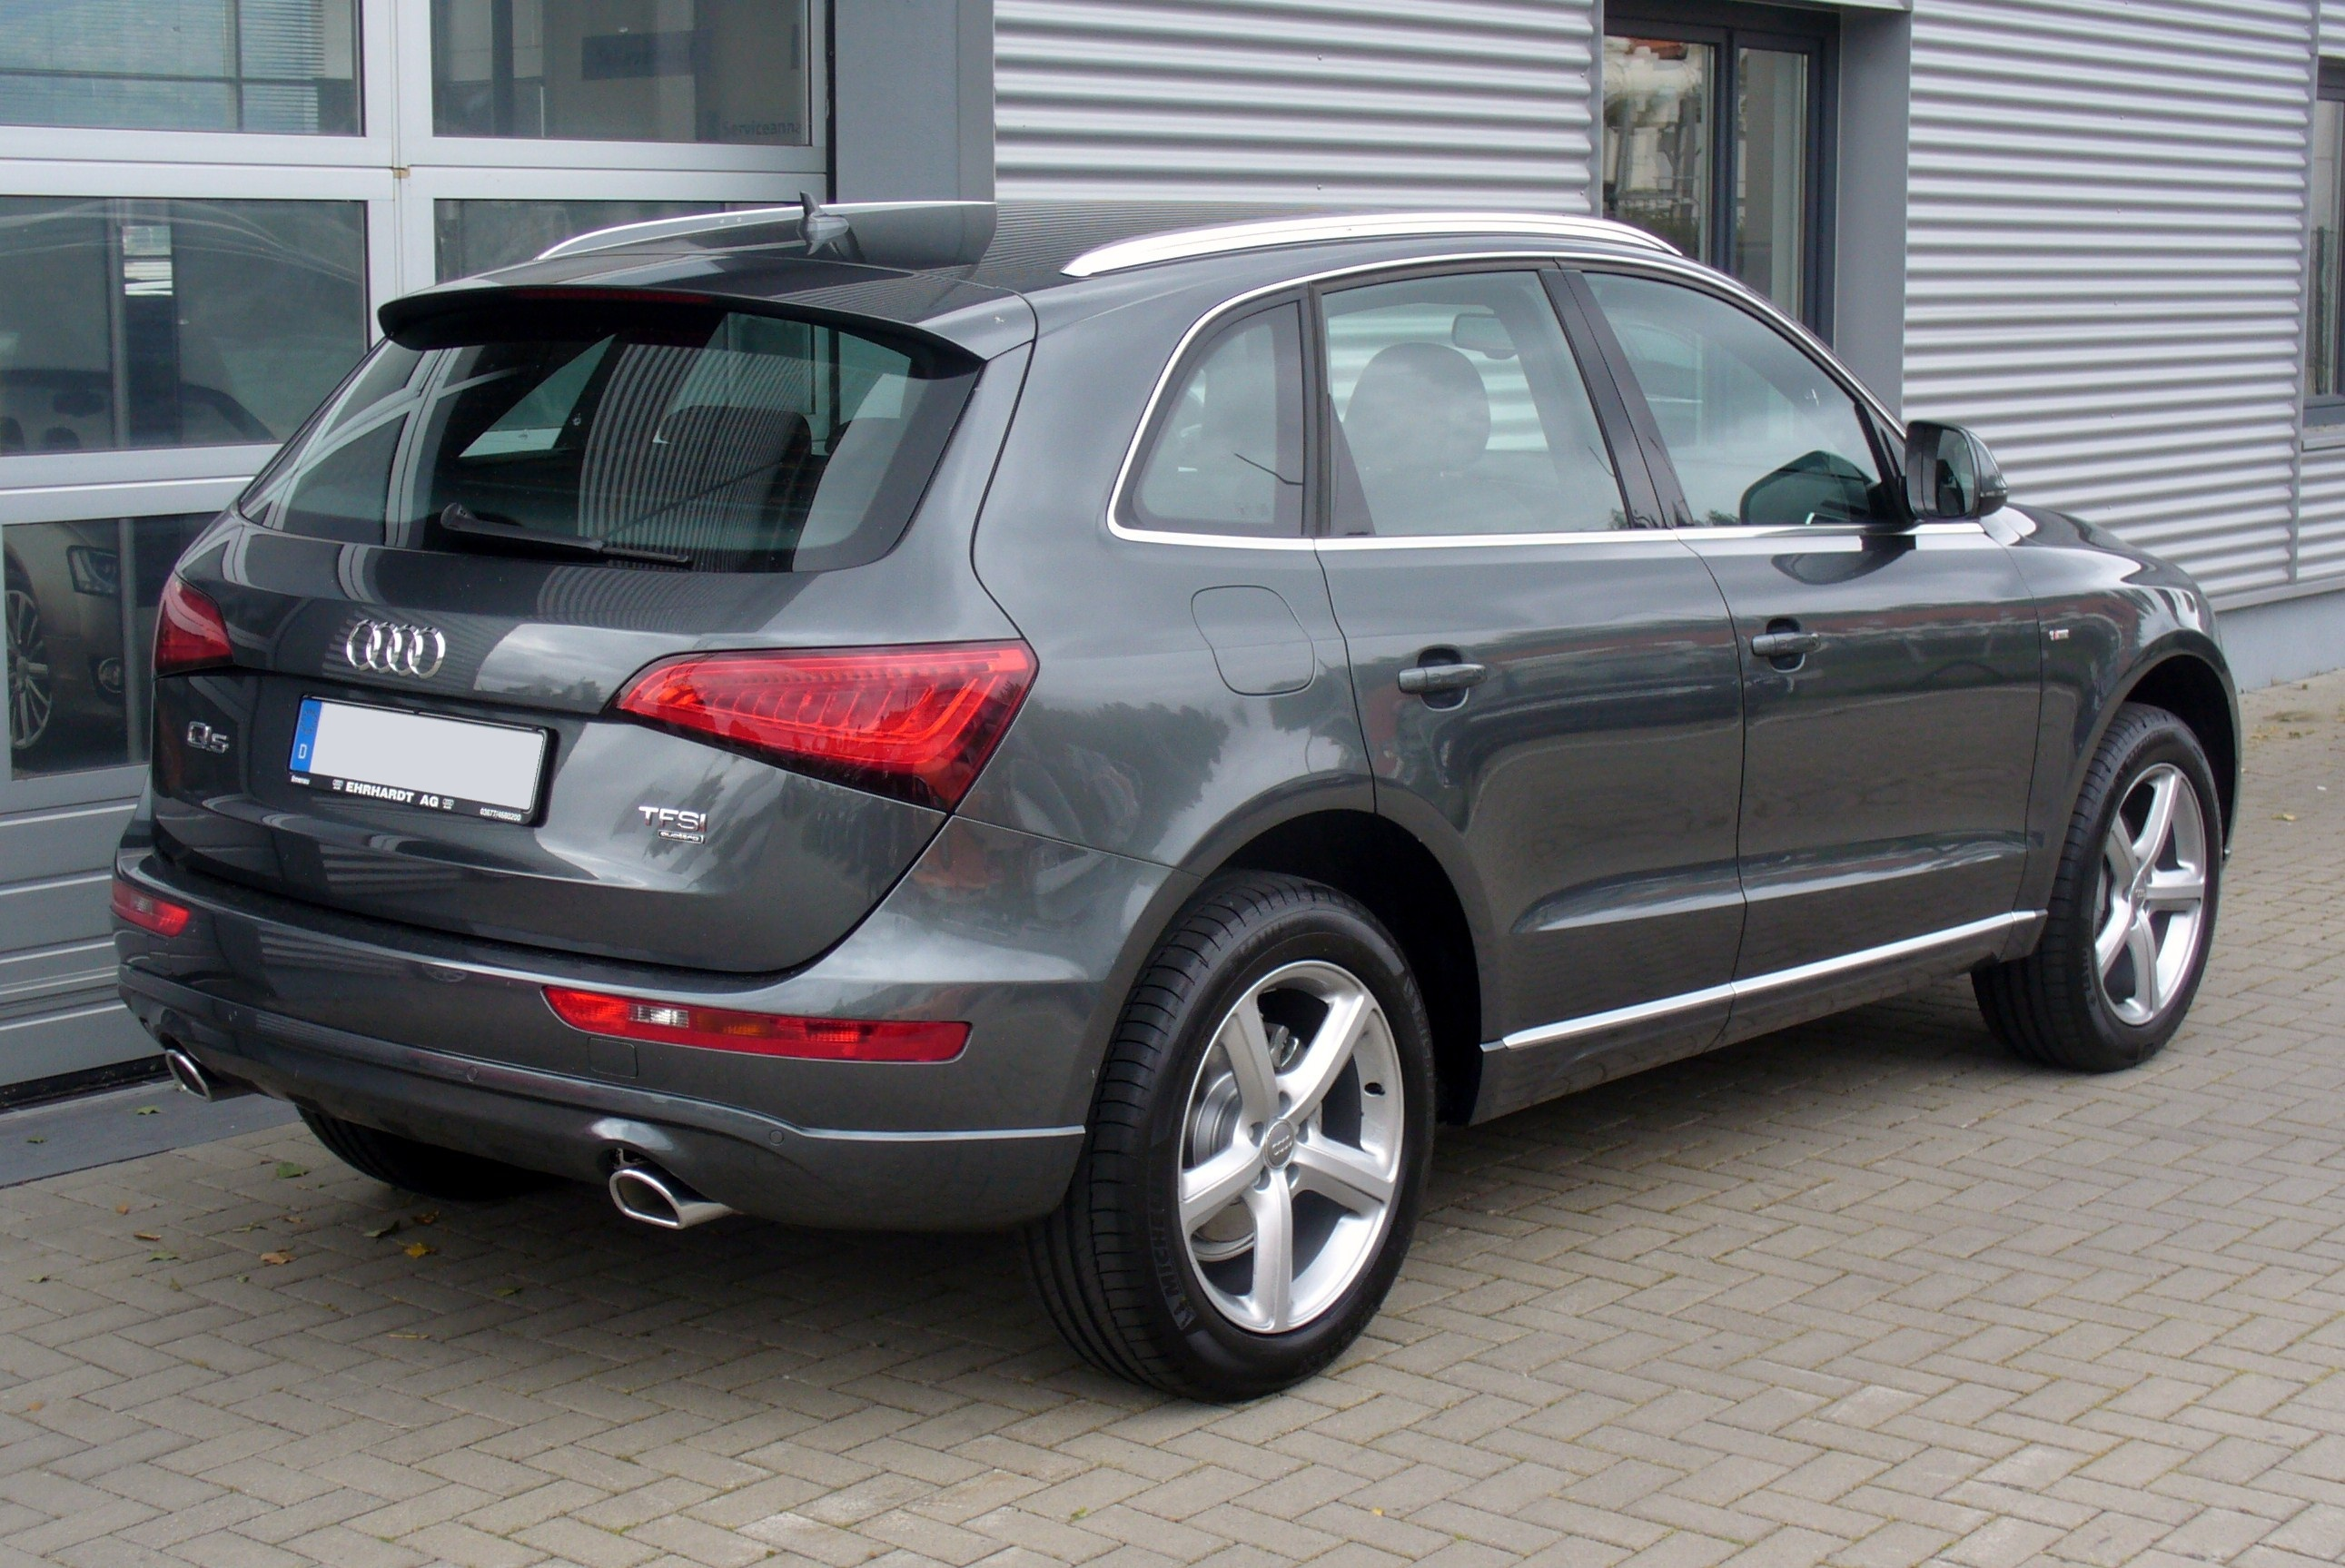 file audi q5 facelift s line 2 0 tfsi quattro tiptronic daytonagrau heck jpg wikimedia commons. Black Bedroom Furniture Sets. Home Design Ideas